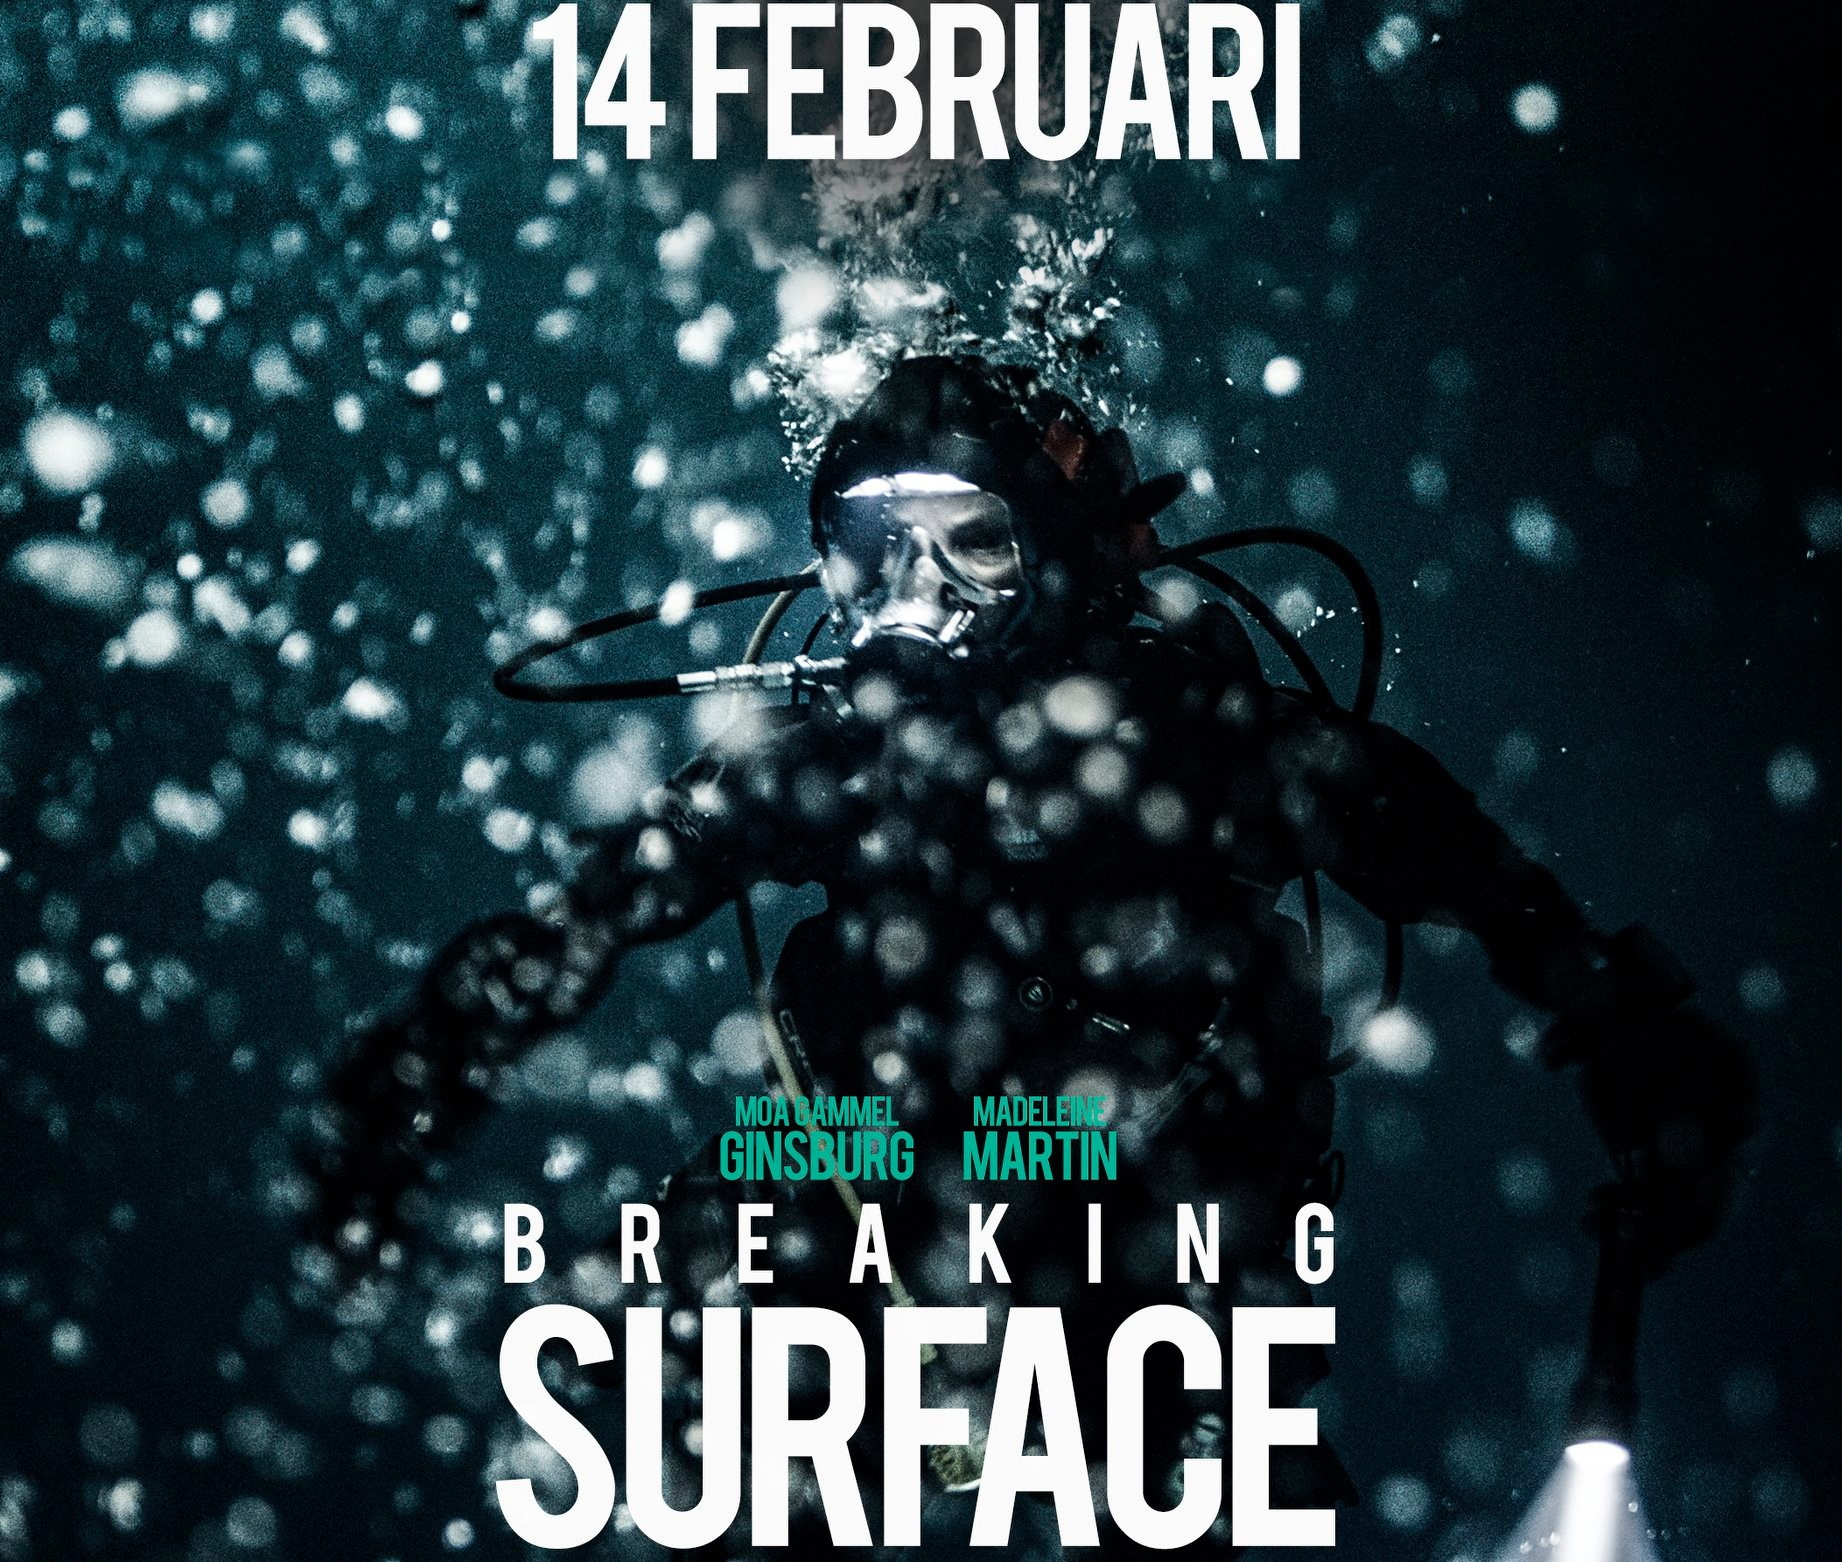 Ny svensk dykthriller - Breaking surface